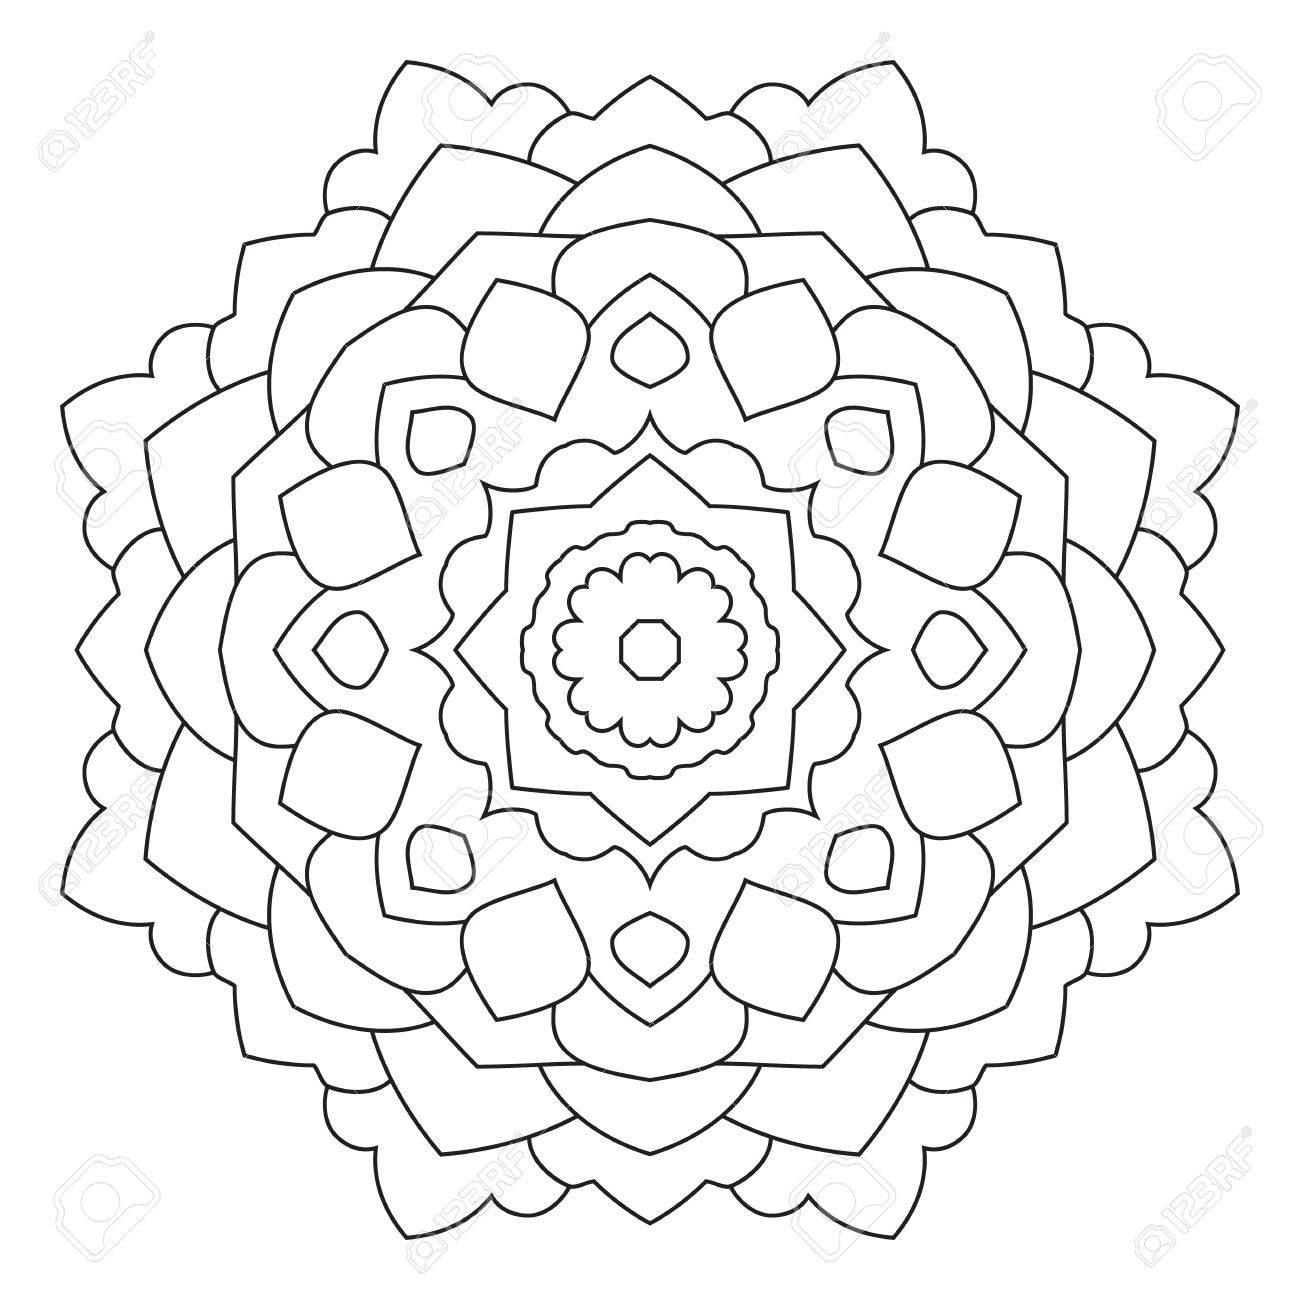 symmetrical circular pattern mandala decorative oriental pattern coloring page for adults stock vector